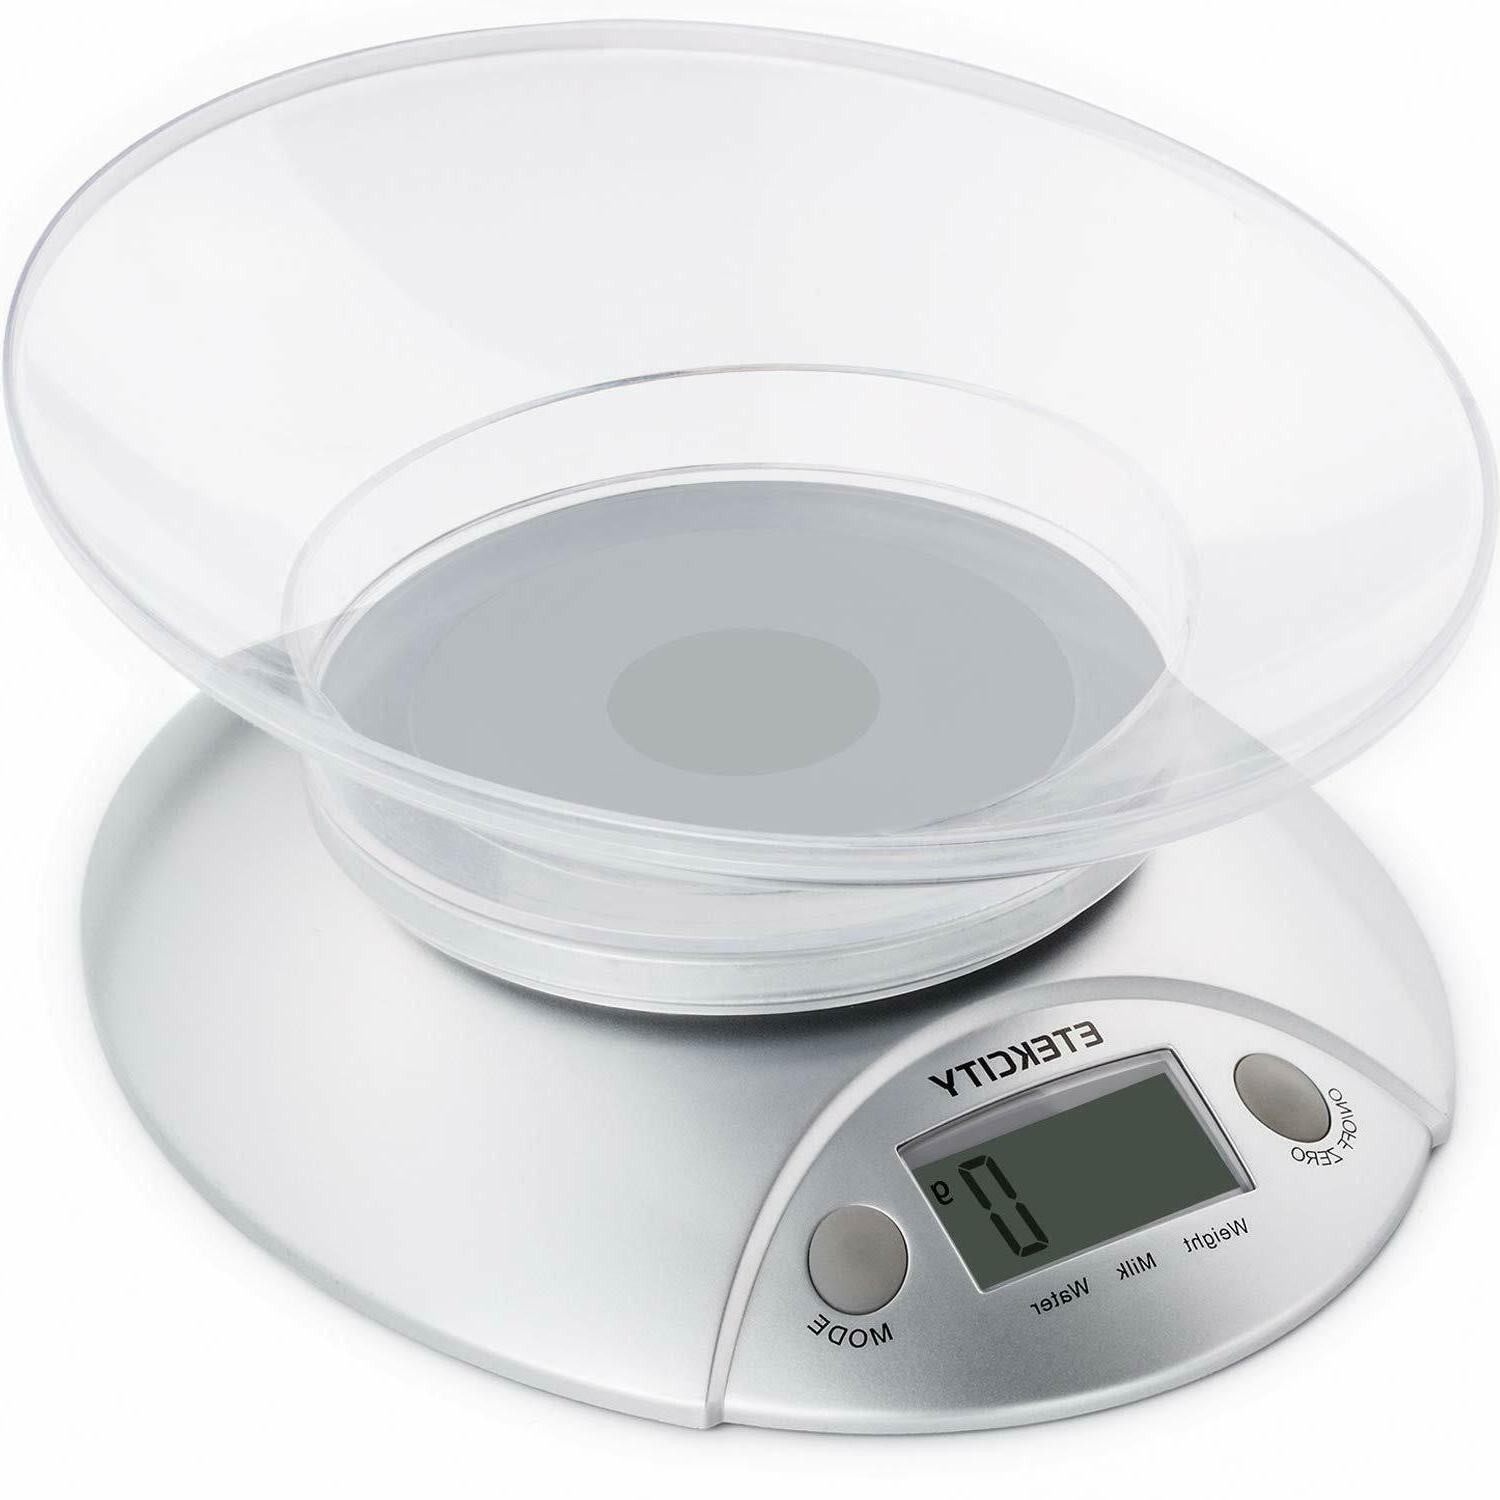 digital food kitchen weight scale with removable